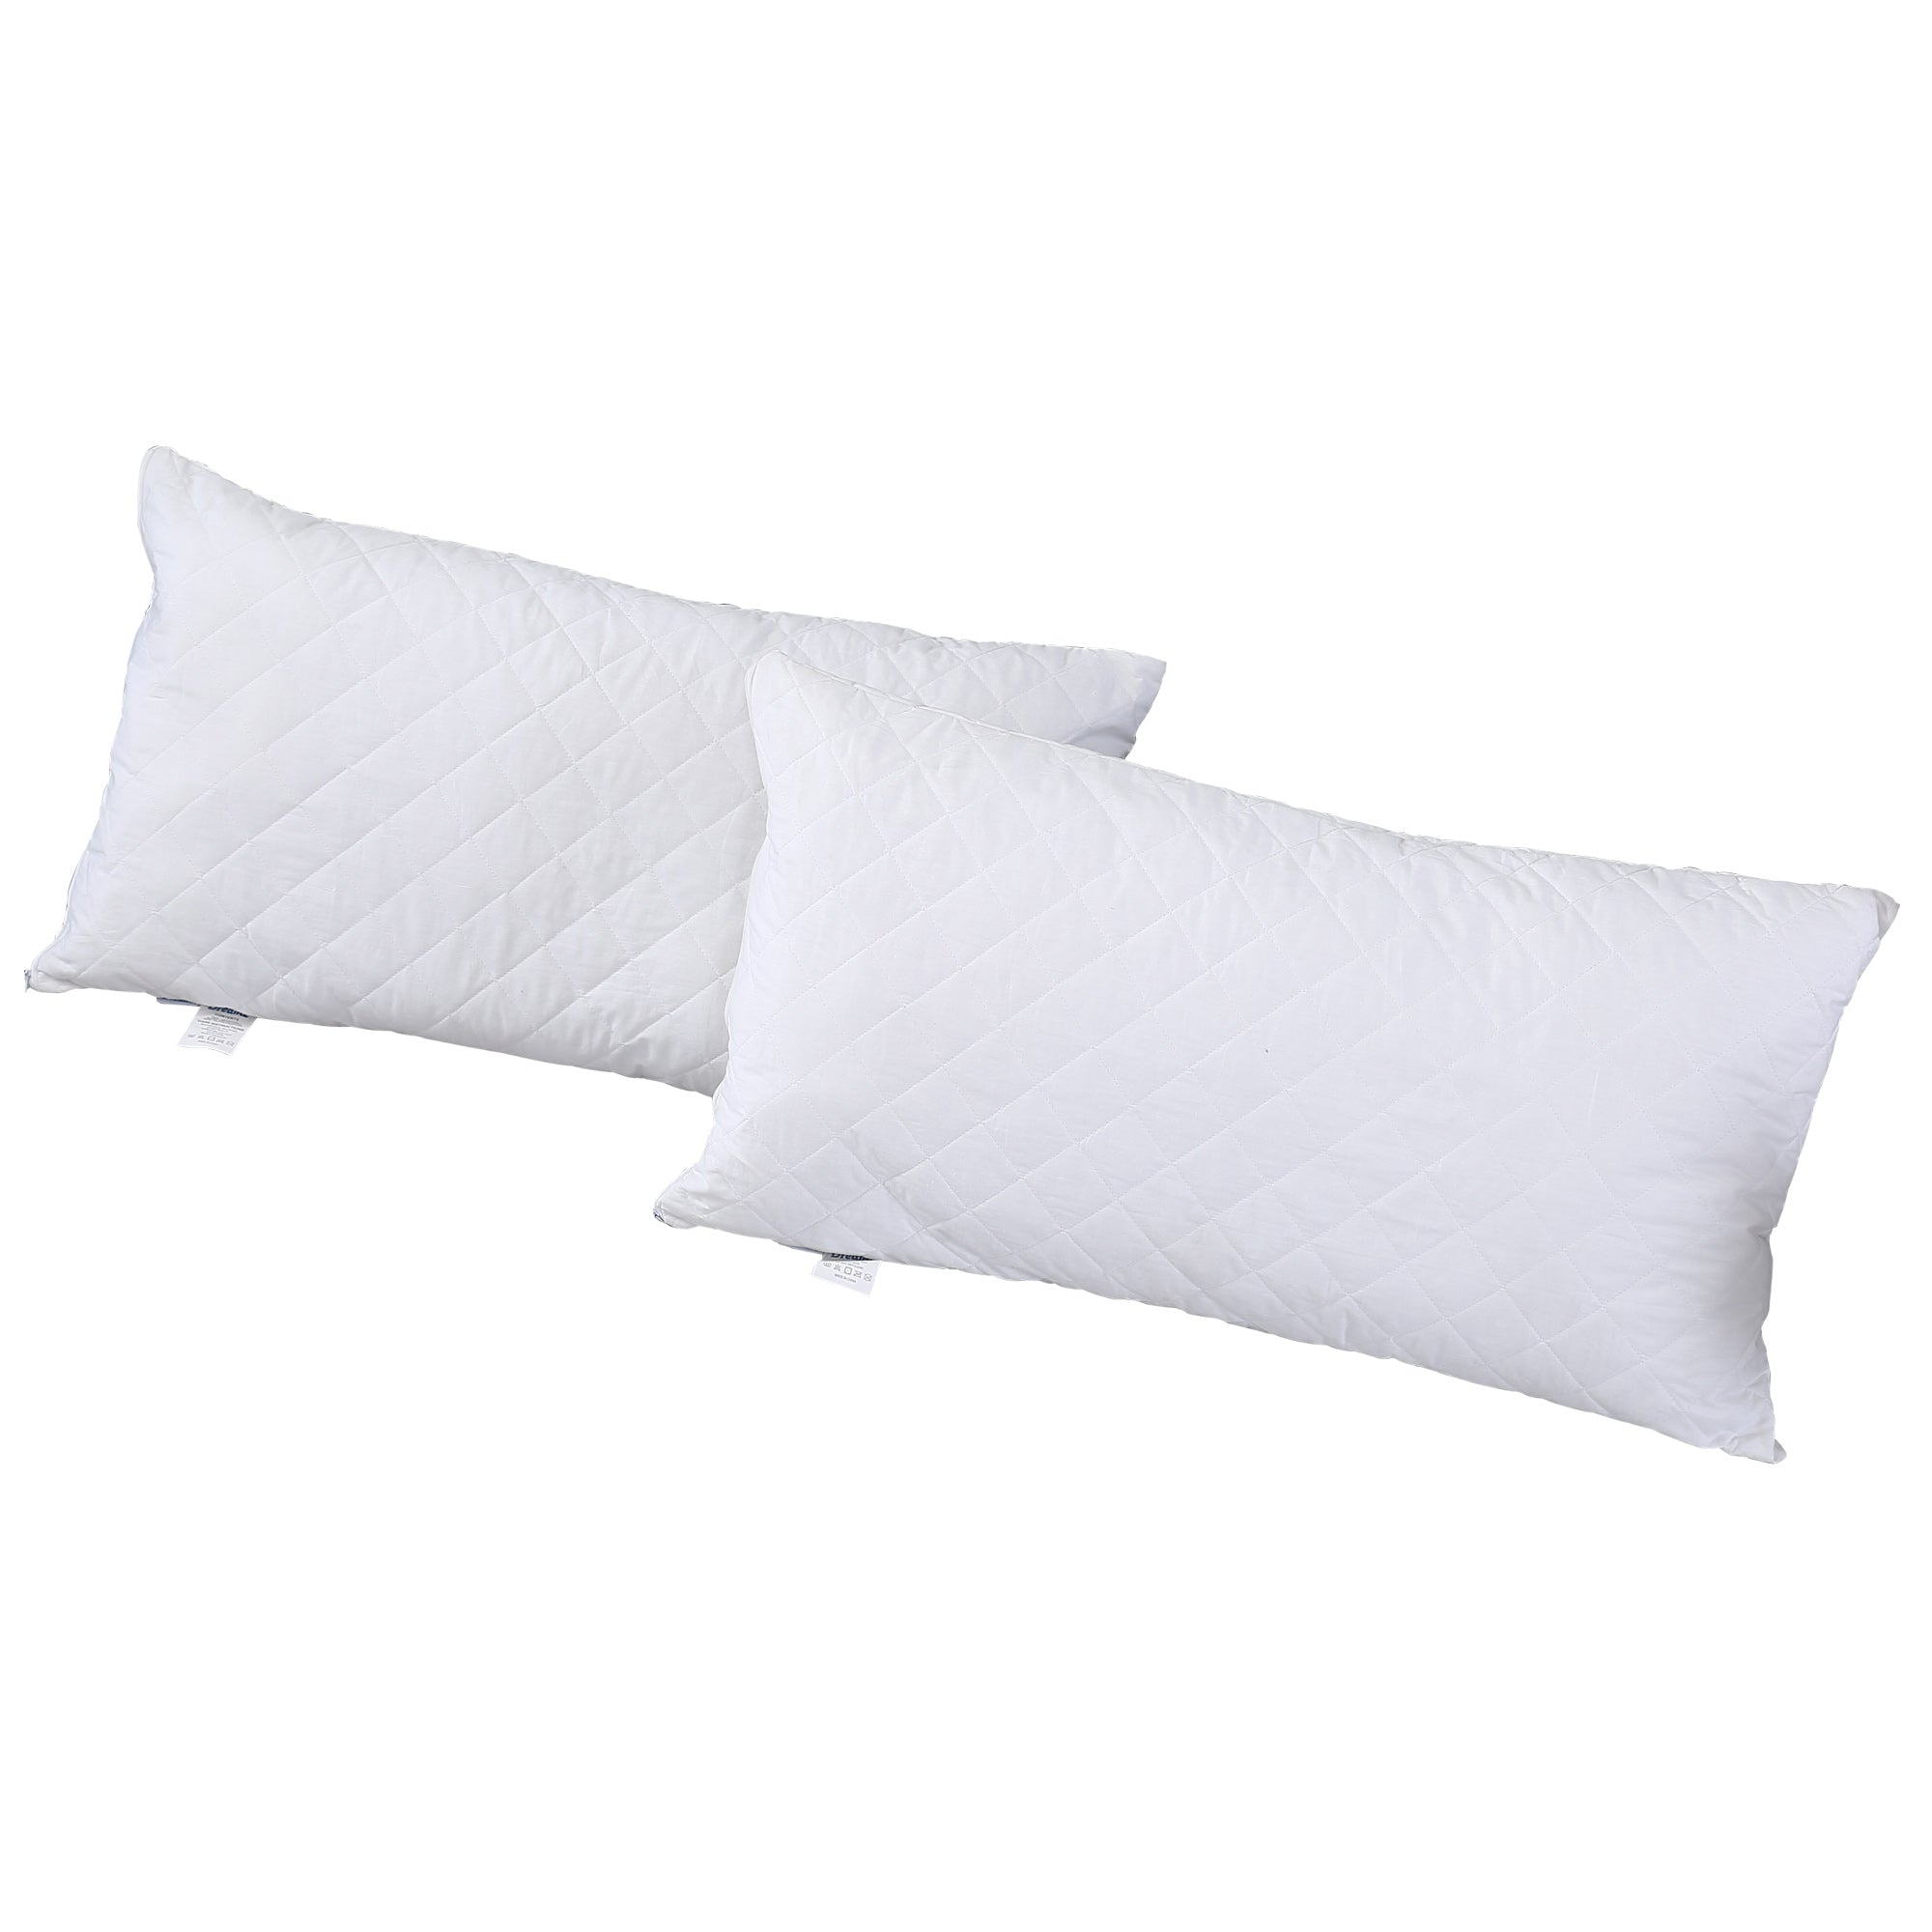 2x Quilted Pillow Protector